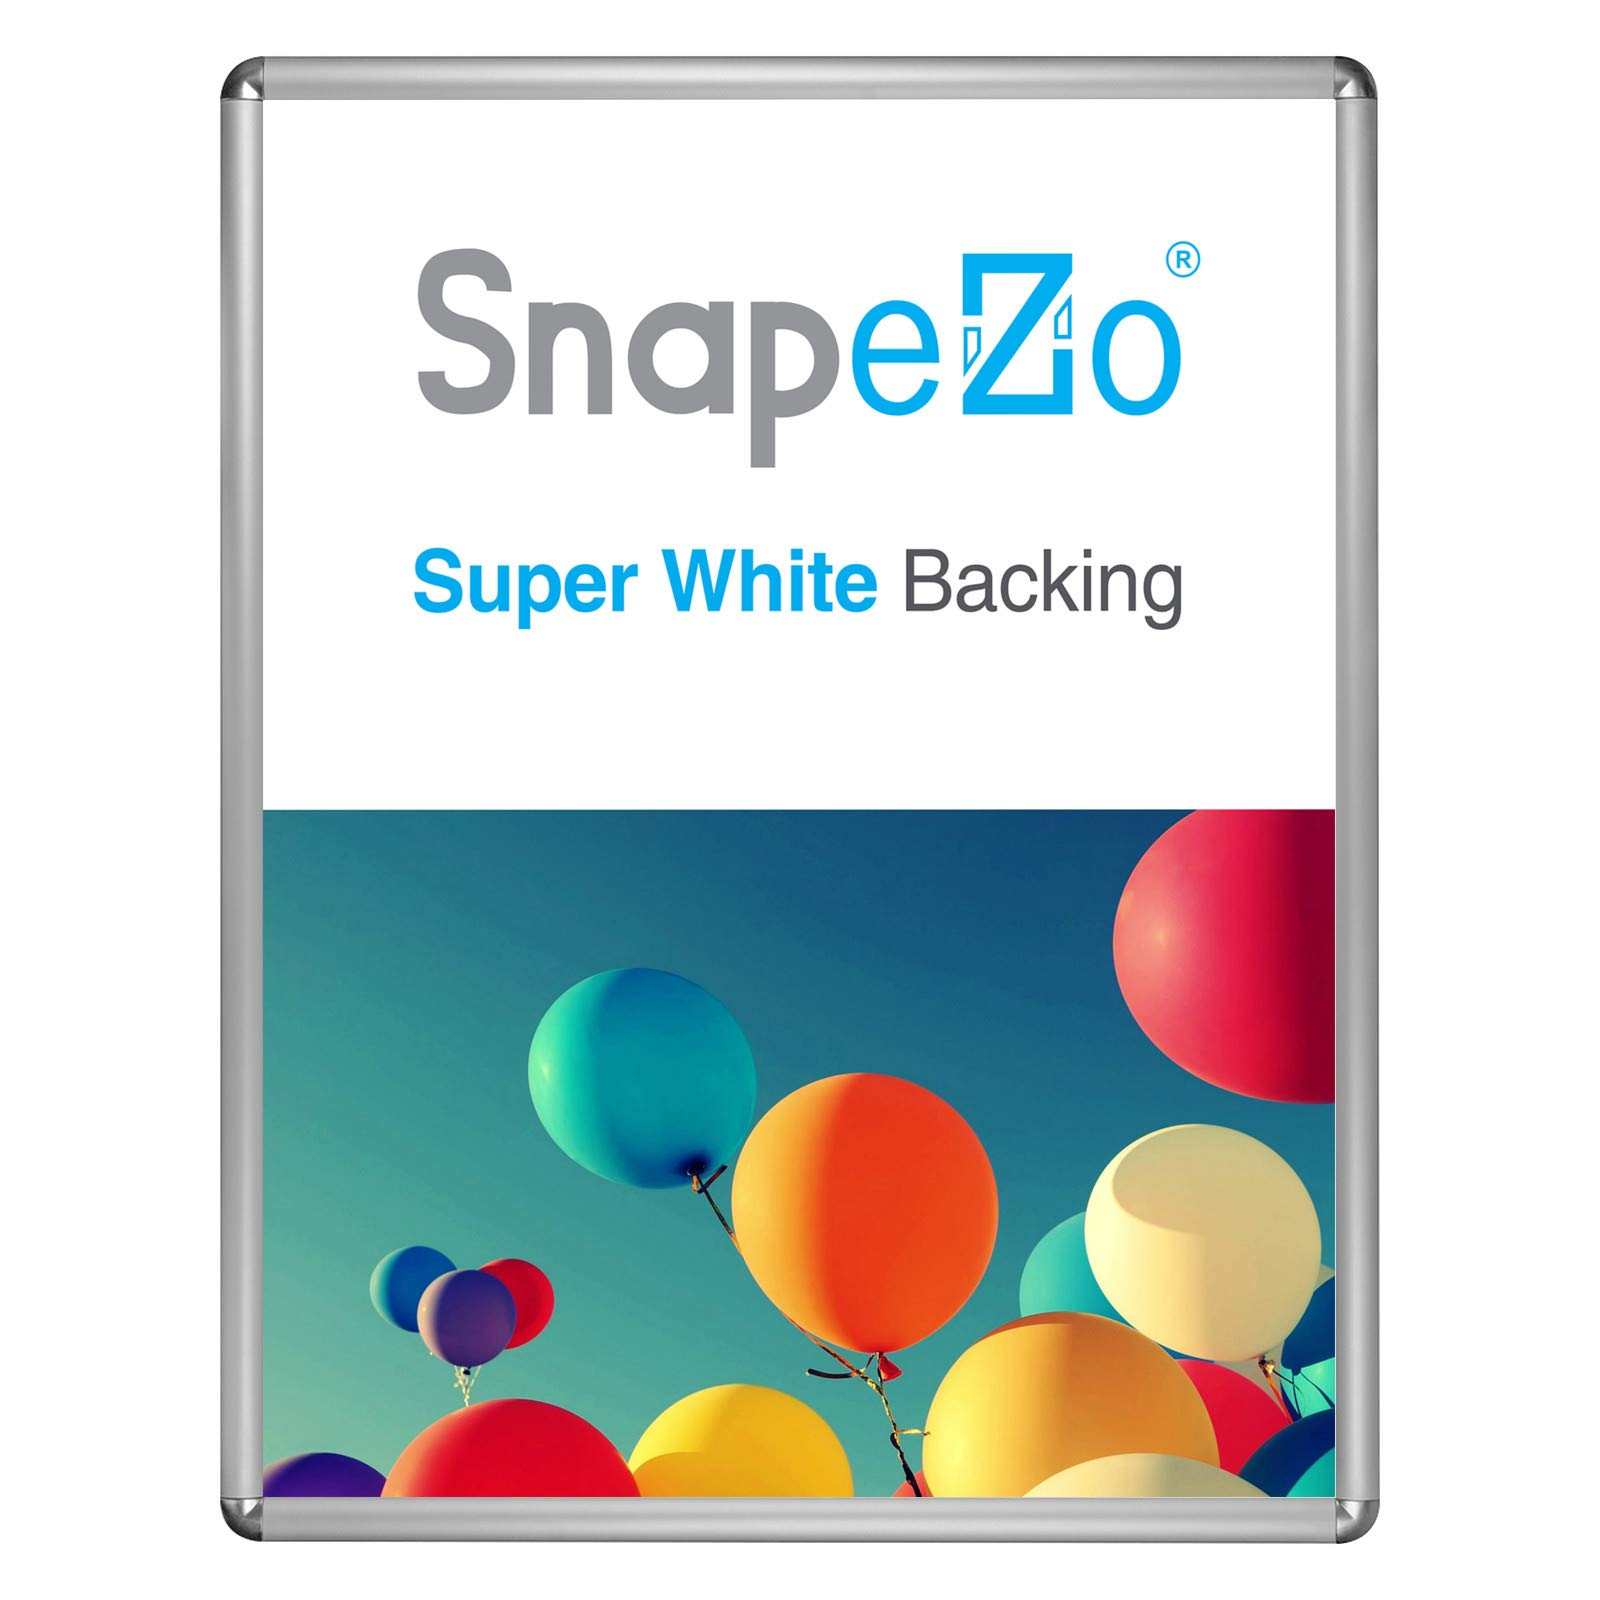 SnapeZo Movie Poster Frame 30x40 Inches, Silver 1.25 Inch Aluminum Profile, Round-Cornered, Front-Loading Snap Frame, Wall Mounting, Professional Series